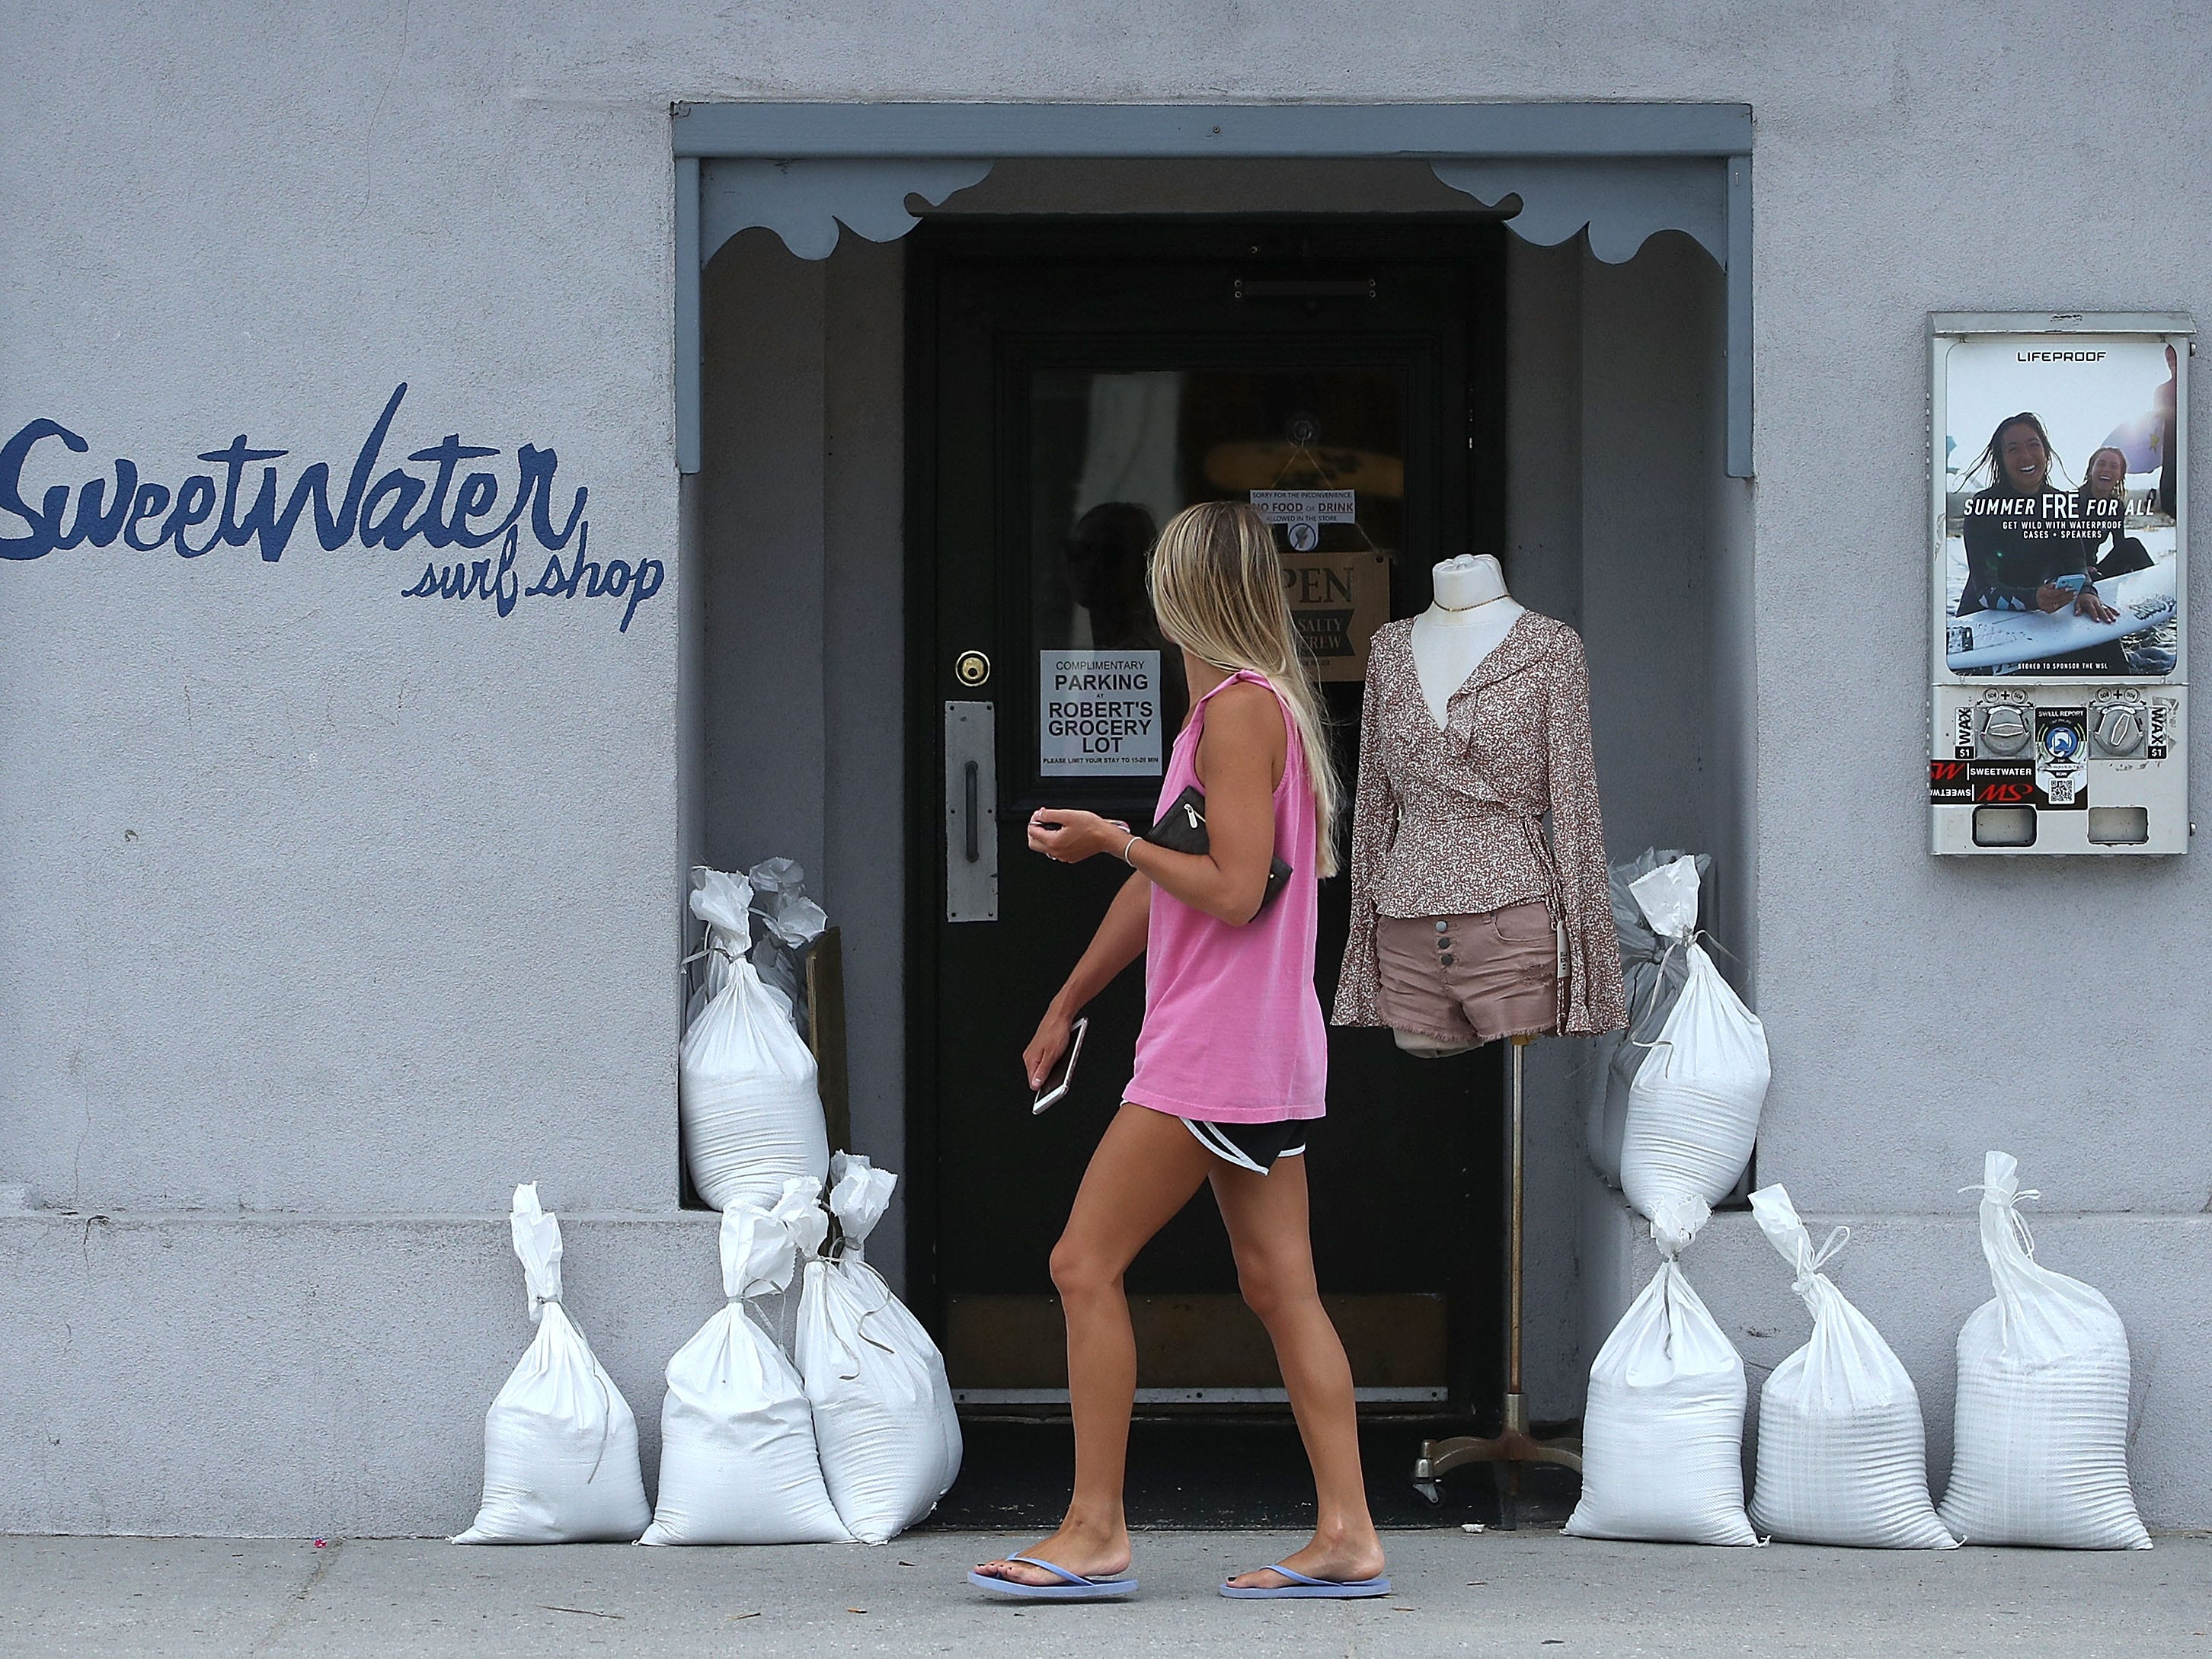 WRIGHTSVILLE BEACH, NC- SEPTEMBER 11: A women walks past a local shop that is prepared for the arrival of Hurricane Florence on September 11, 2018 in Wrightsville Beach, United States. Hurricane Florence is expected on Friday possibly as a category 4 storm along the Virginia, North Carolina and South Carolina coastline.  (Photo by Mark Wilson/Getty Images) ORG XMIT: 775225768 ORIG FILE ID: 1031464342